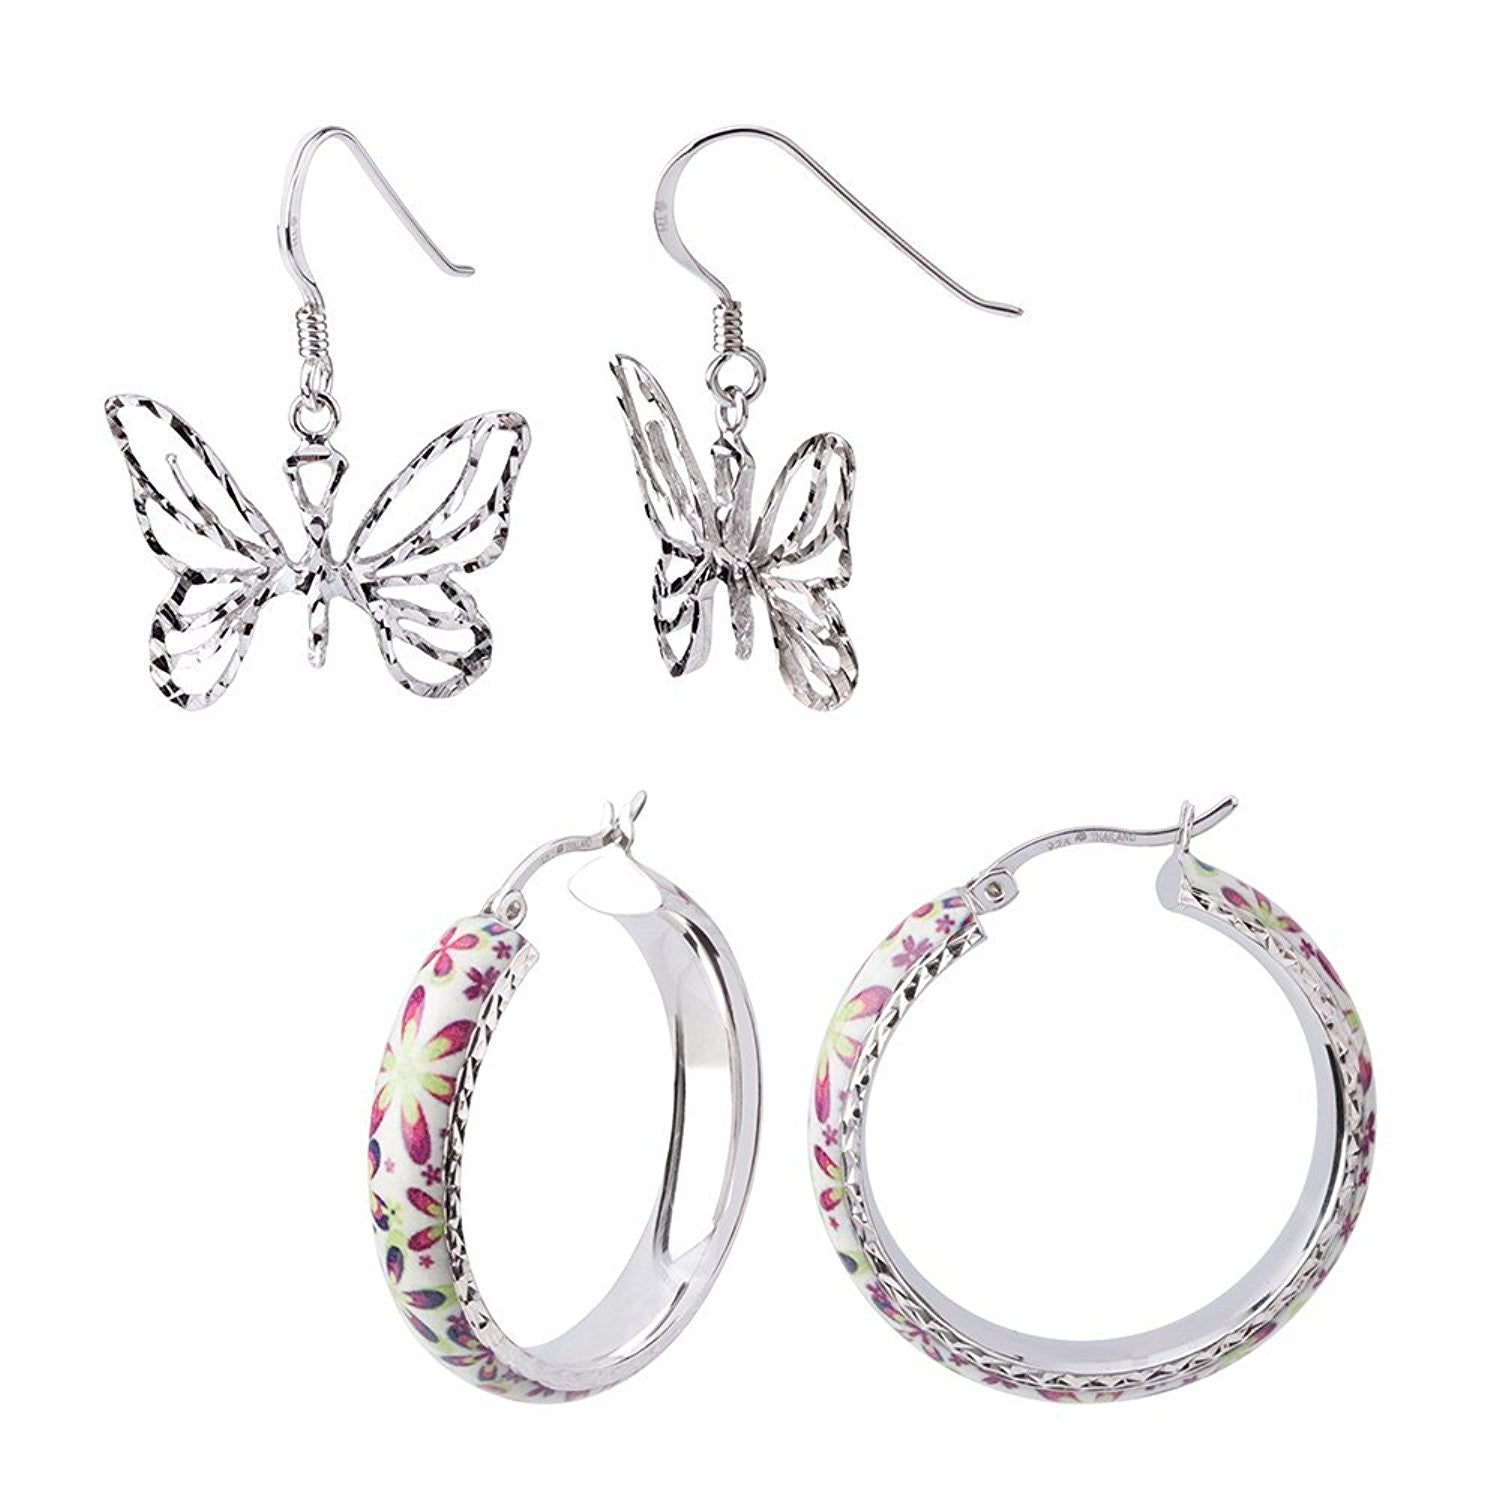 Spring Earrings Set